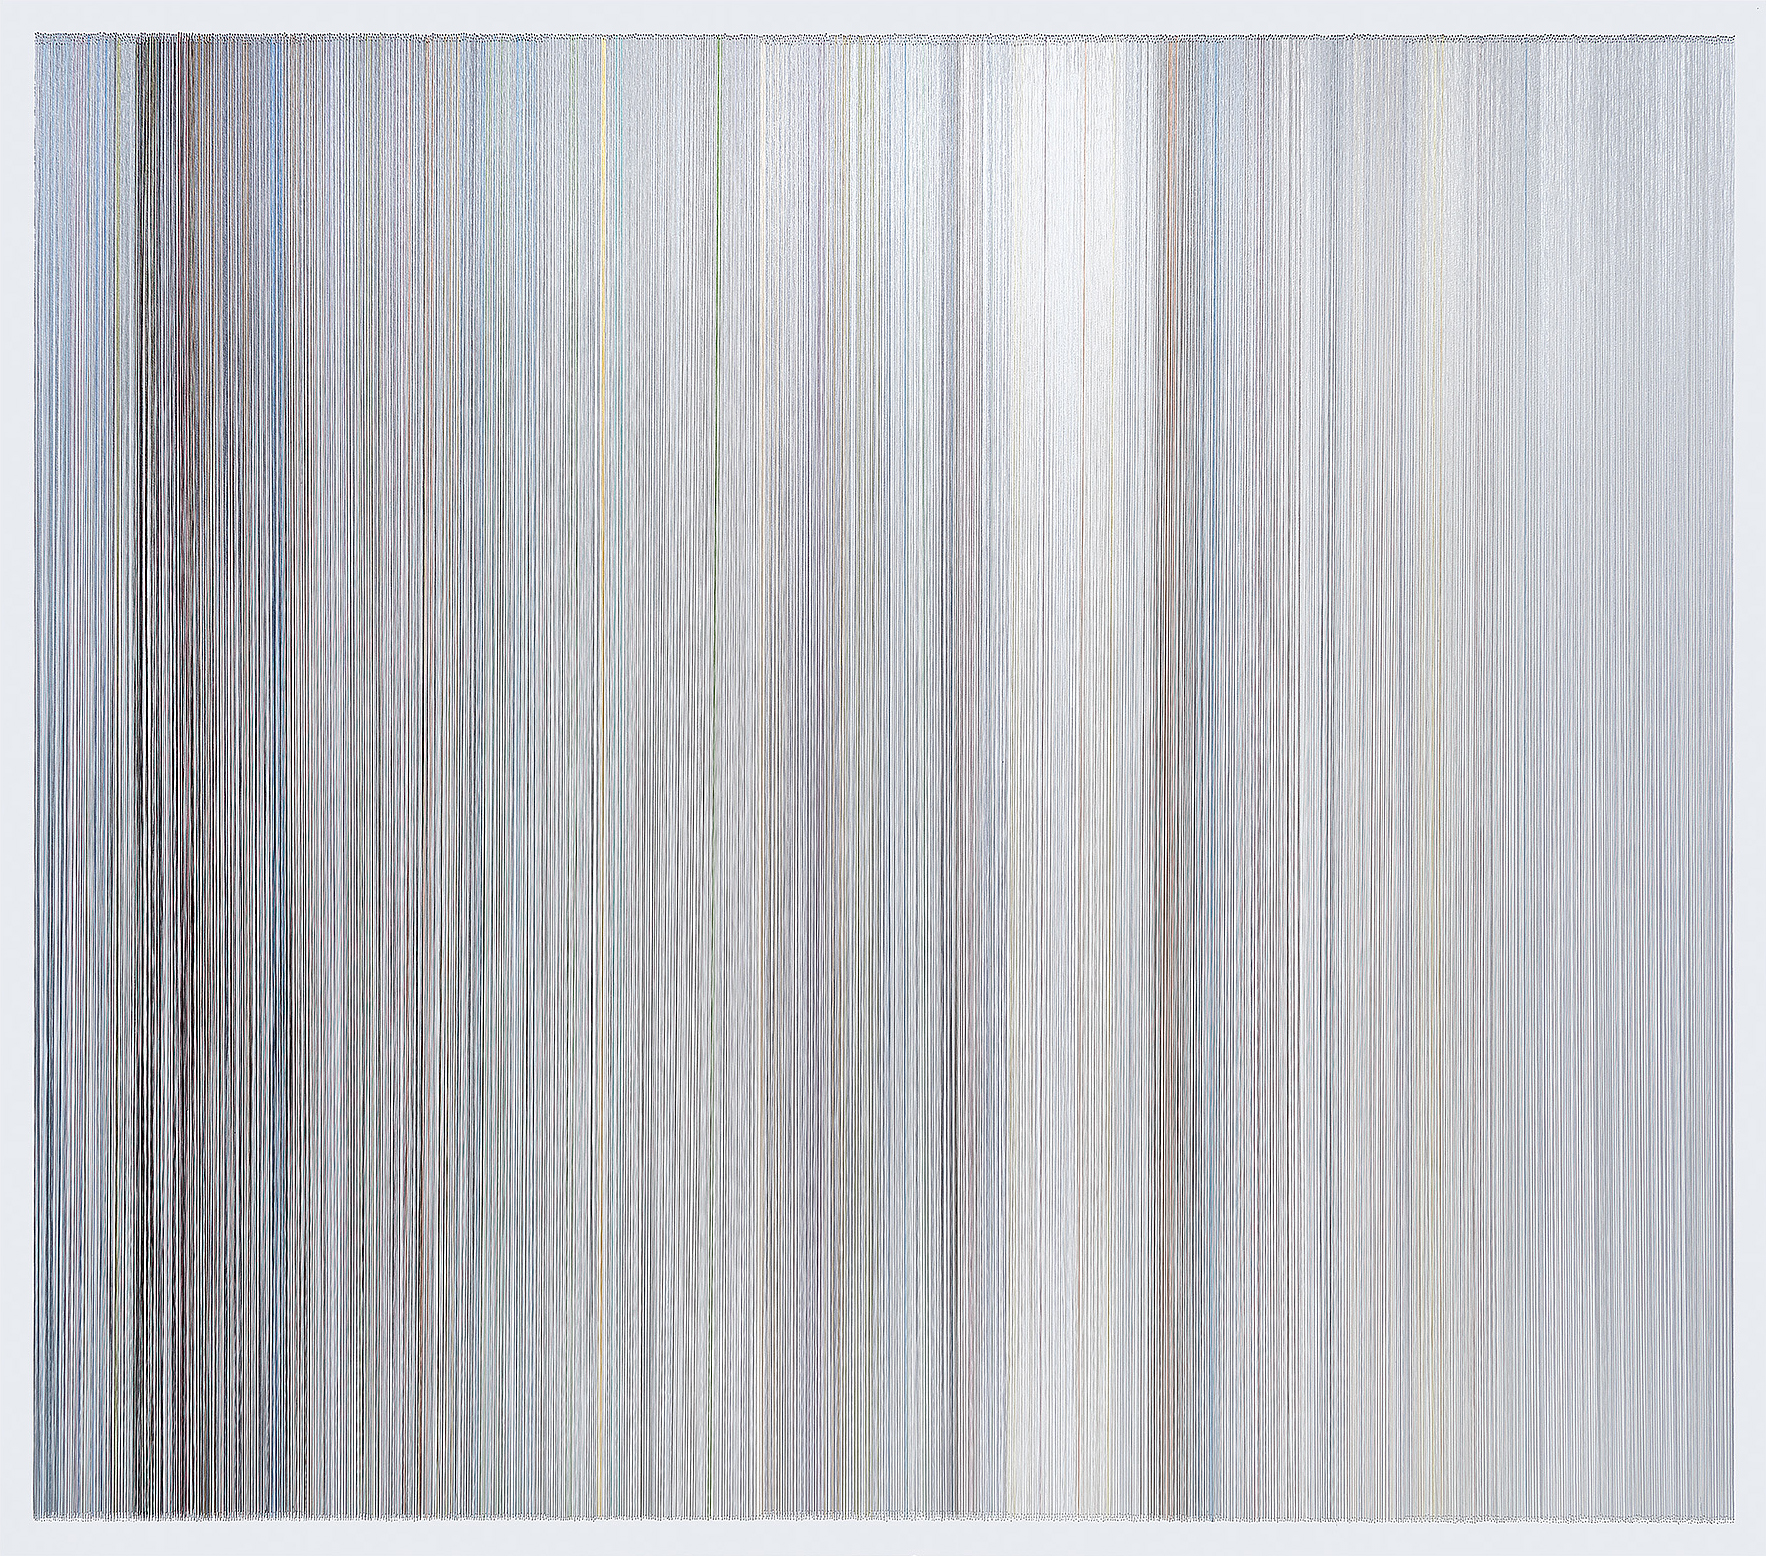 thread drawing 24  2013 rayon thread 58 by 51 inches private collection, Stanford, CA